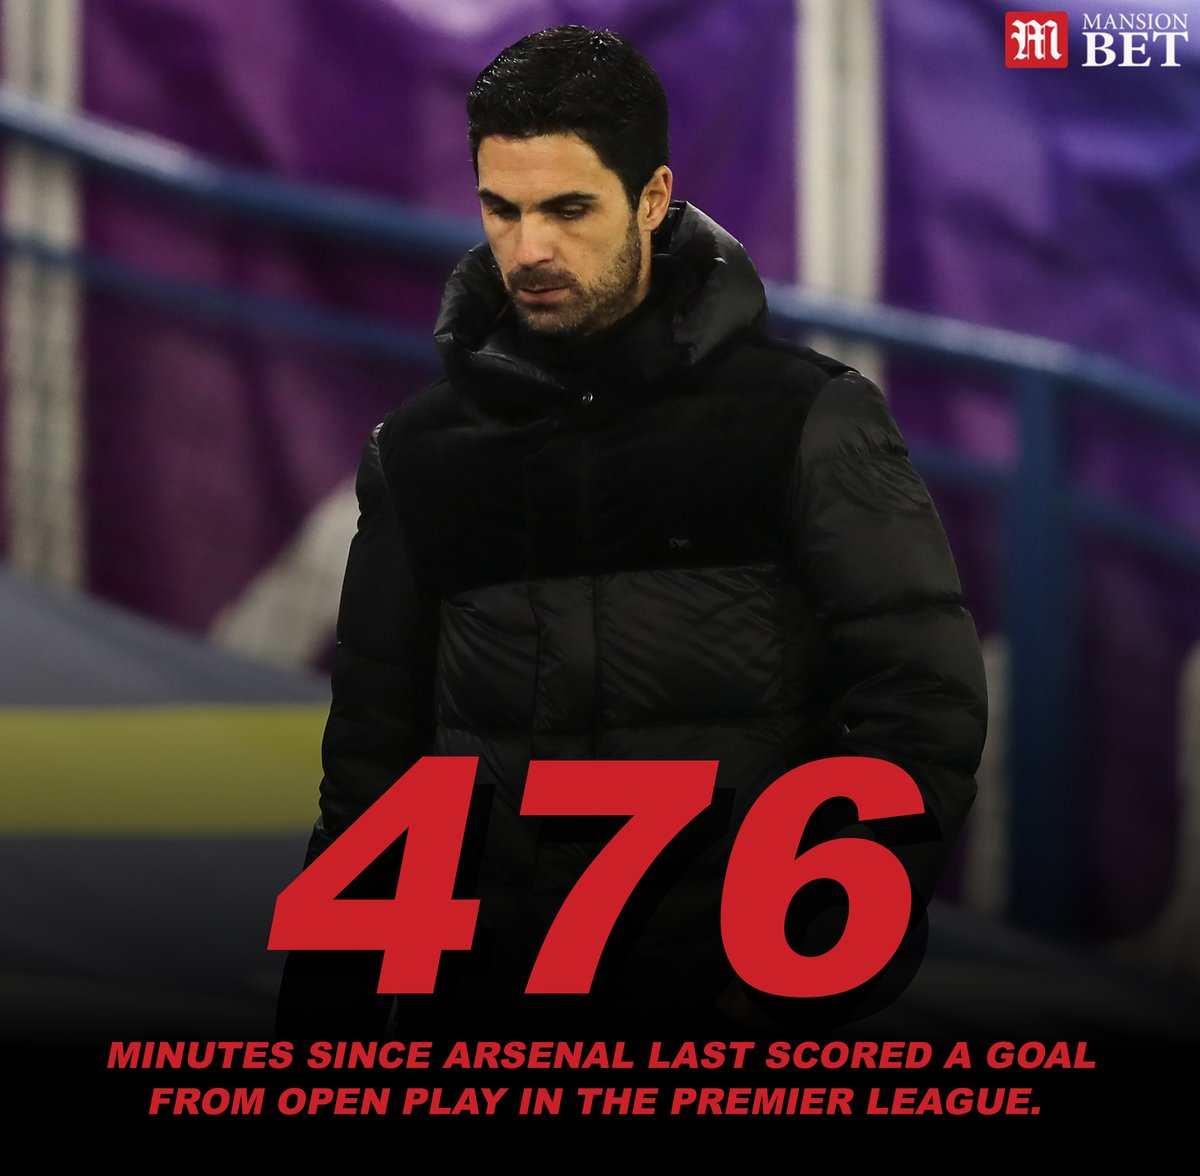 Bad reading for #AFC fans 📉 https://t.co/7RV5raJLHj